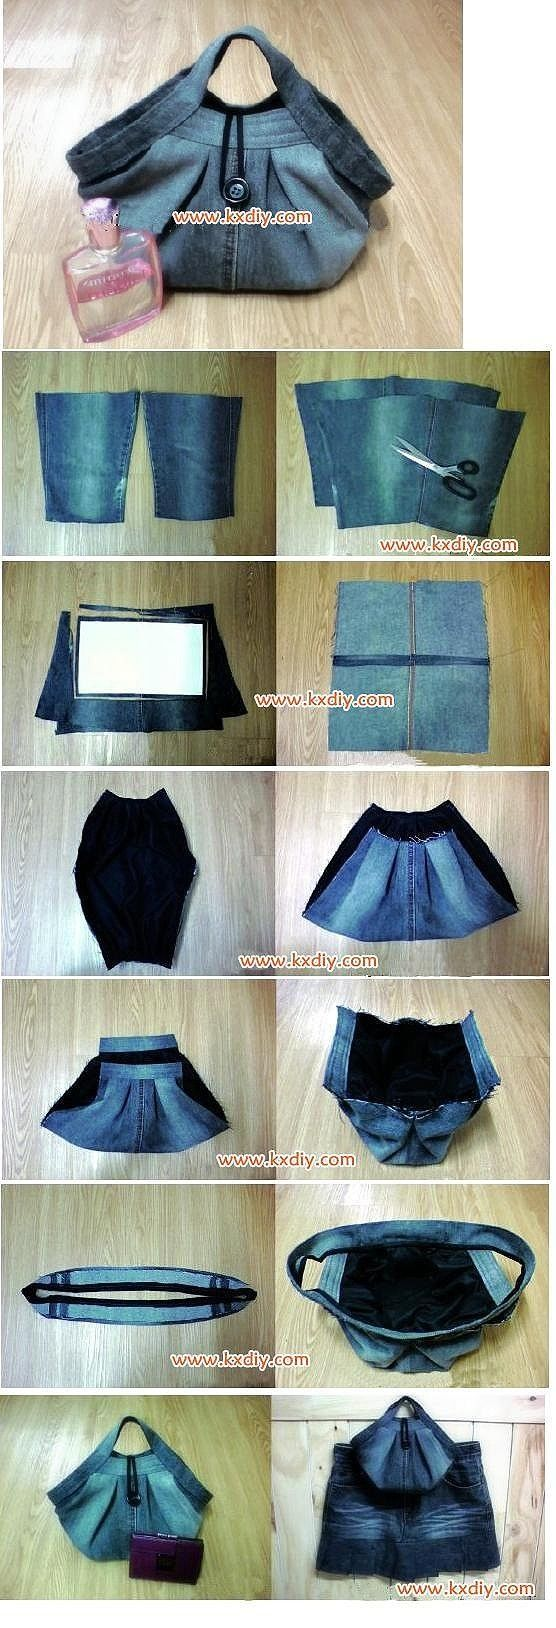 DIY Stylish Handbag from Used Jeans | iCreativeIdeas.com Like Us on Facebook ==> https://www.facebook.com/icreativeideas